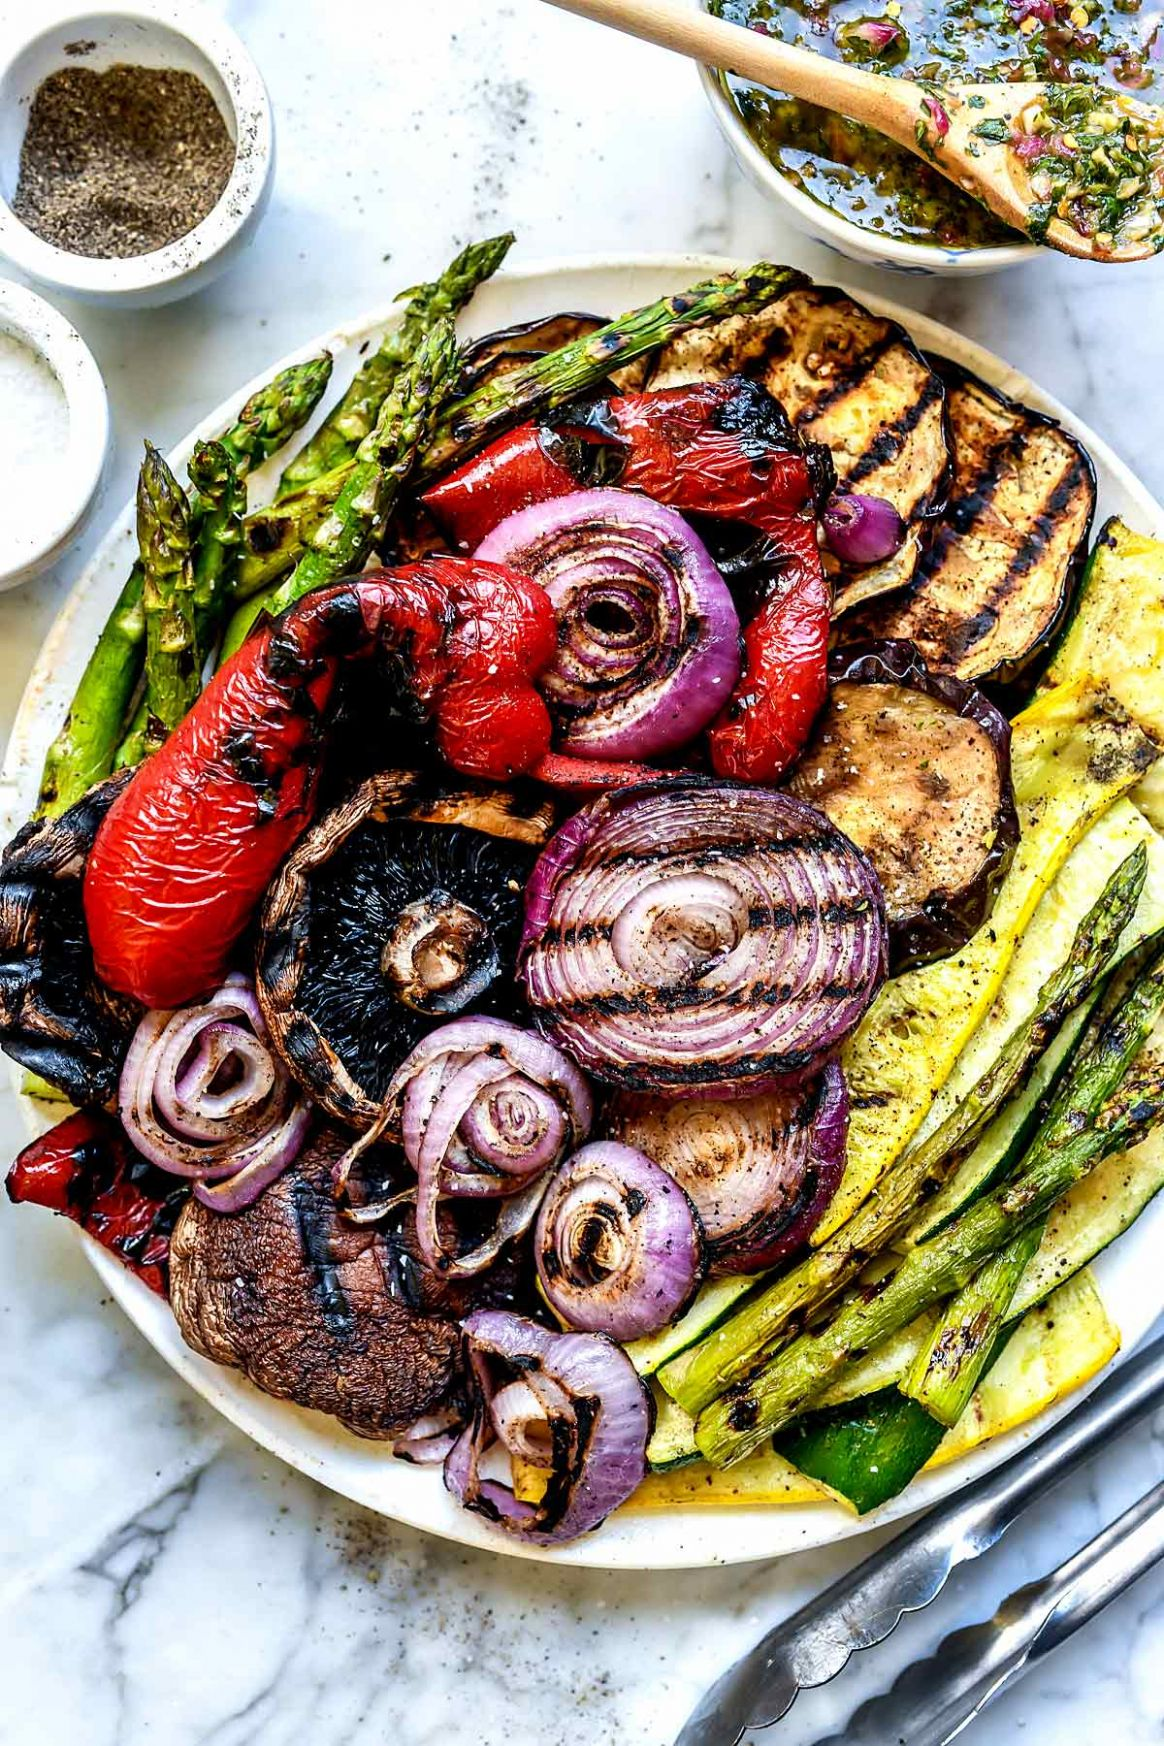 The Best Easy Grilled Vegetables - Recipes Vegetables On The Grill